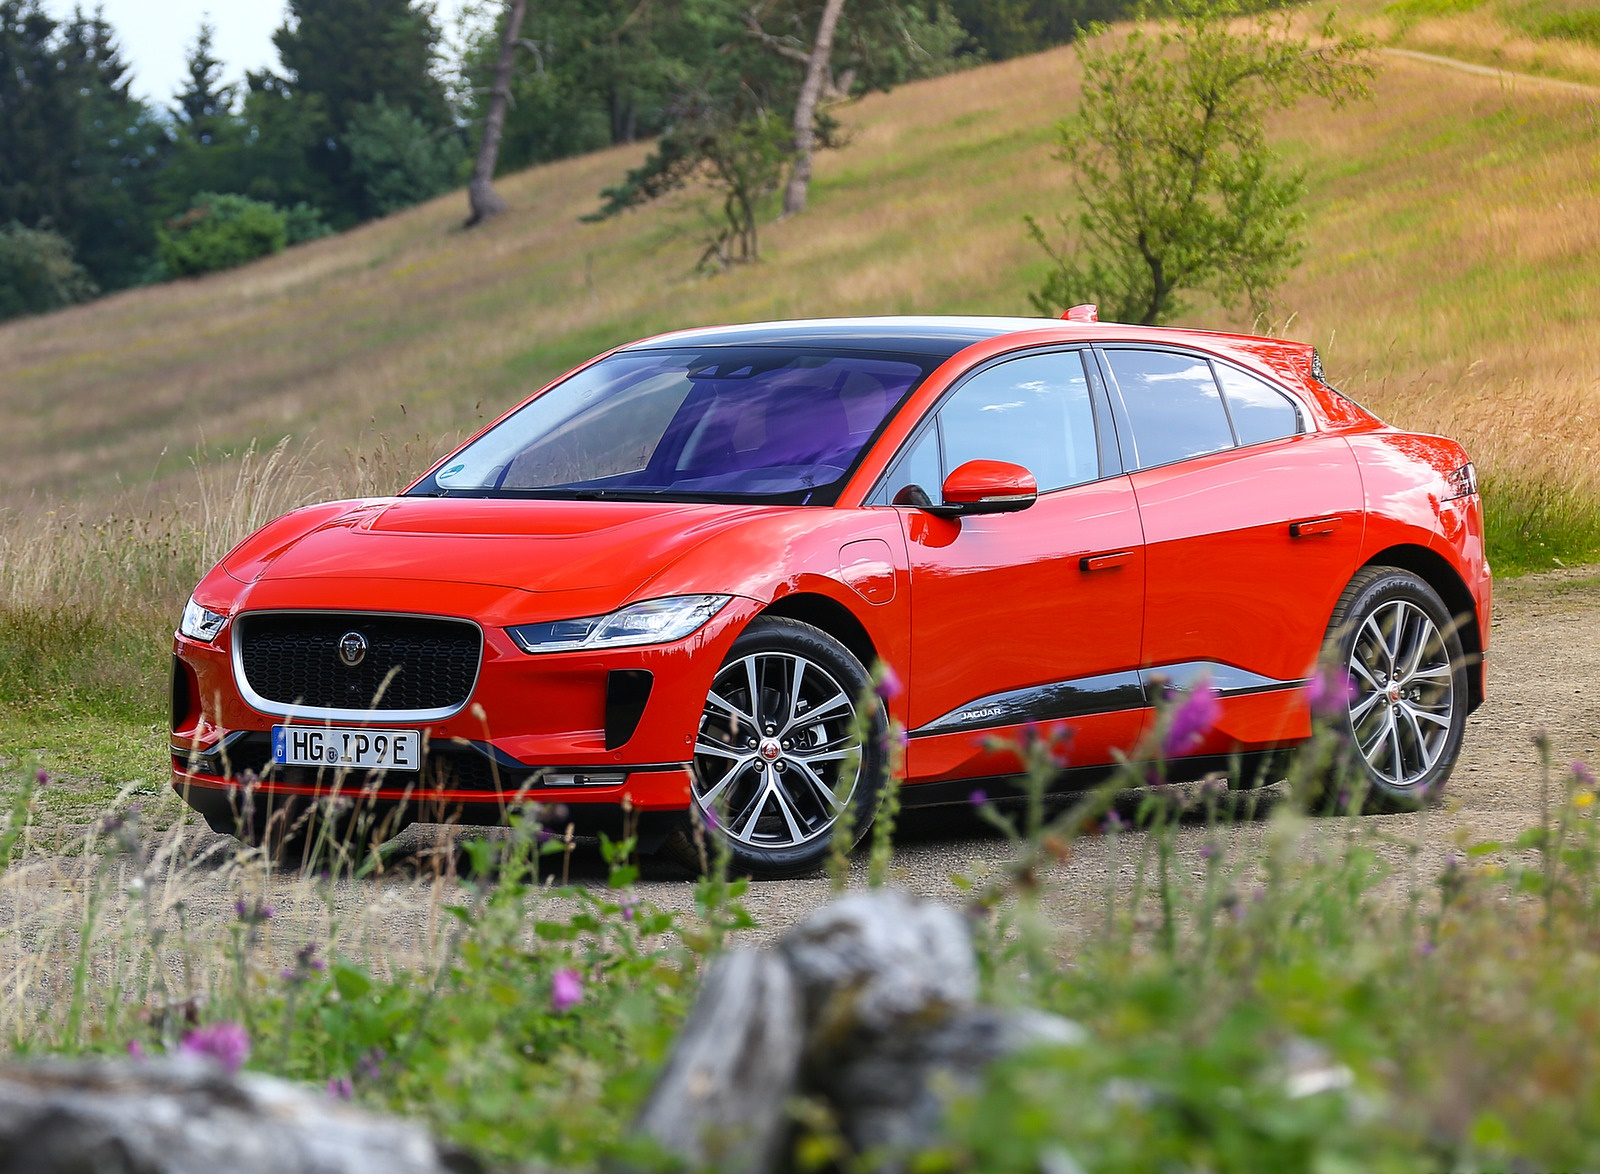 2019 Jaguar I-PACE EV400 AWD HSE First Edition (Color: Photon Red) Front Three-Quarter Wallpapers #46 of 192